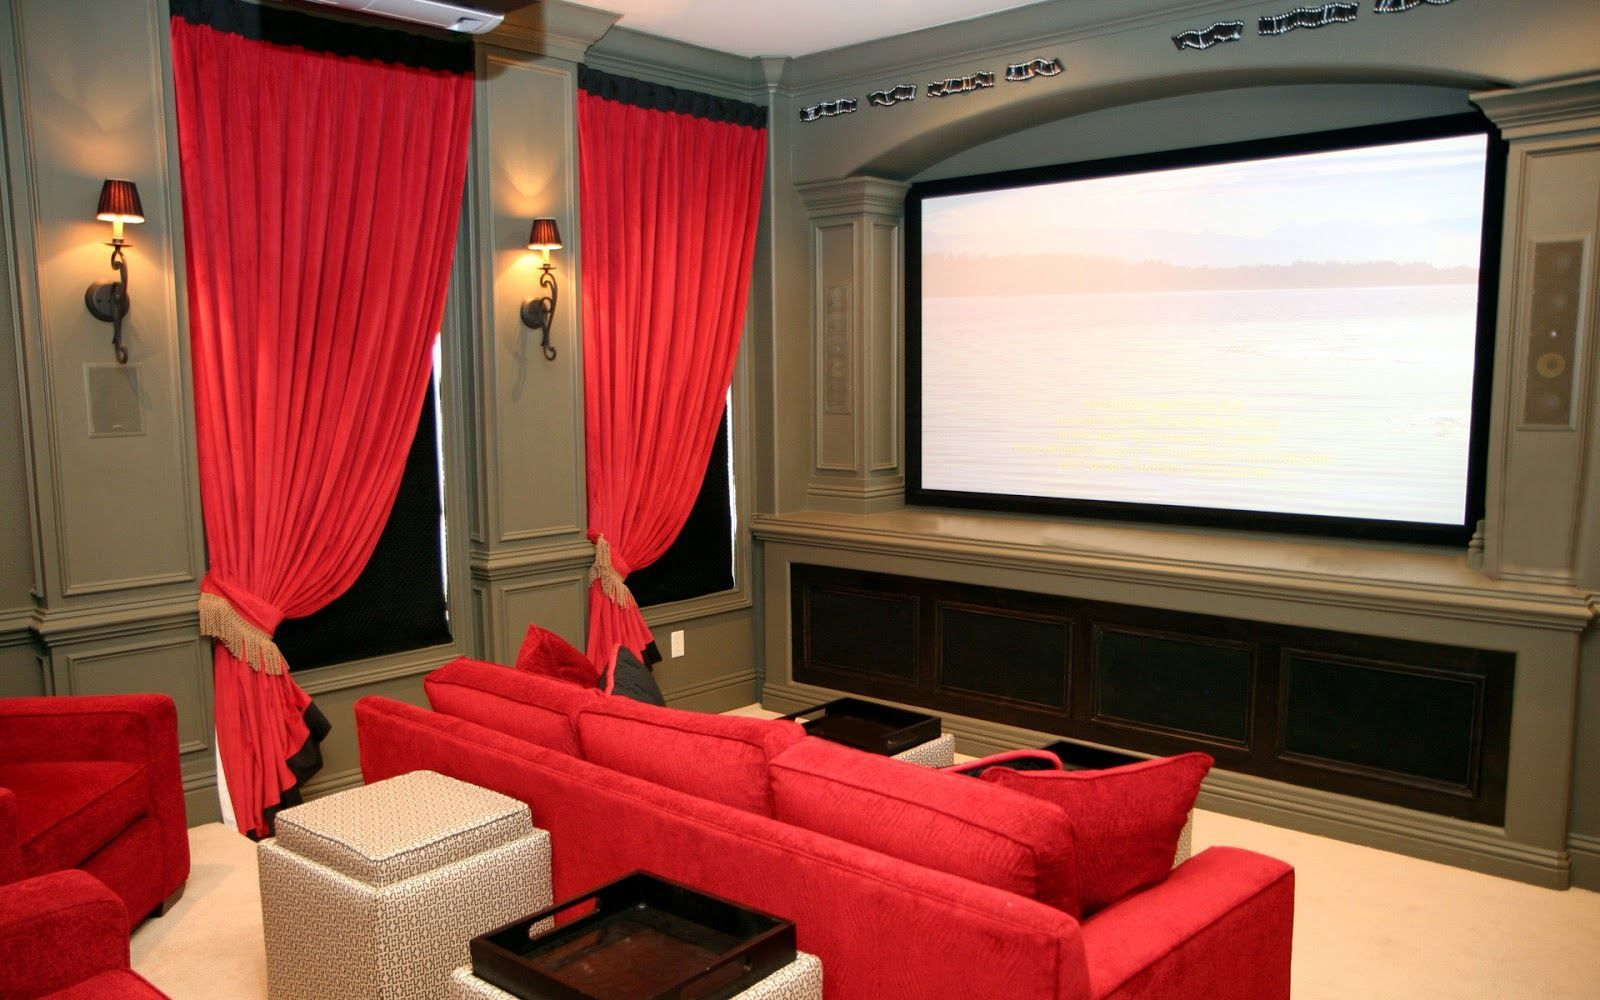 Pin By Scout Blaszczak On New House Home Theater Room Design Theater Room Design Home Theater Rooms